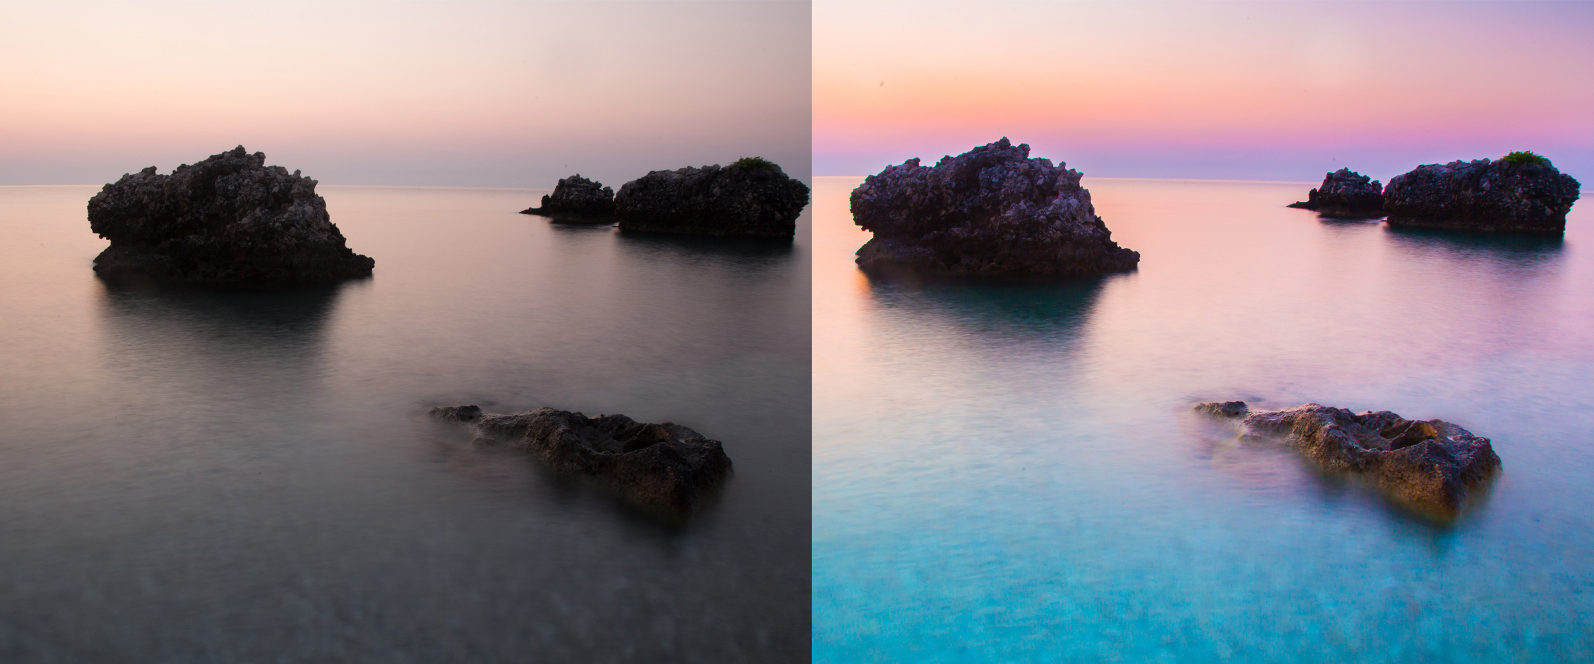 BUNDLE /// 04_Travel Collection // 64 x Desktop and Mobile Presets - Ainos 1 -